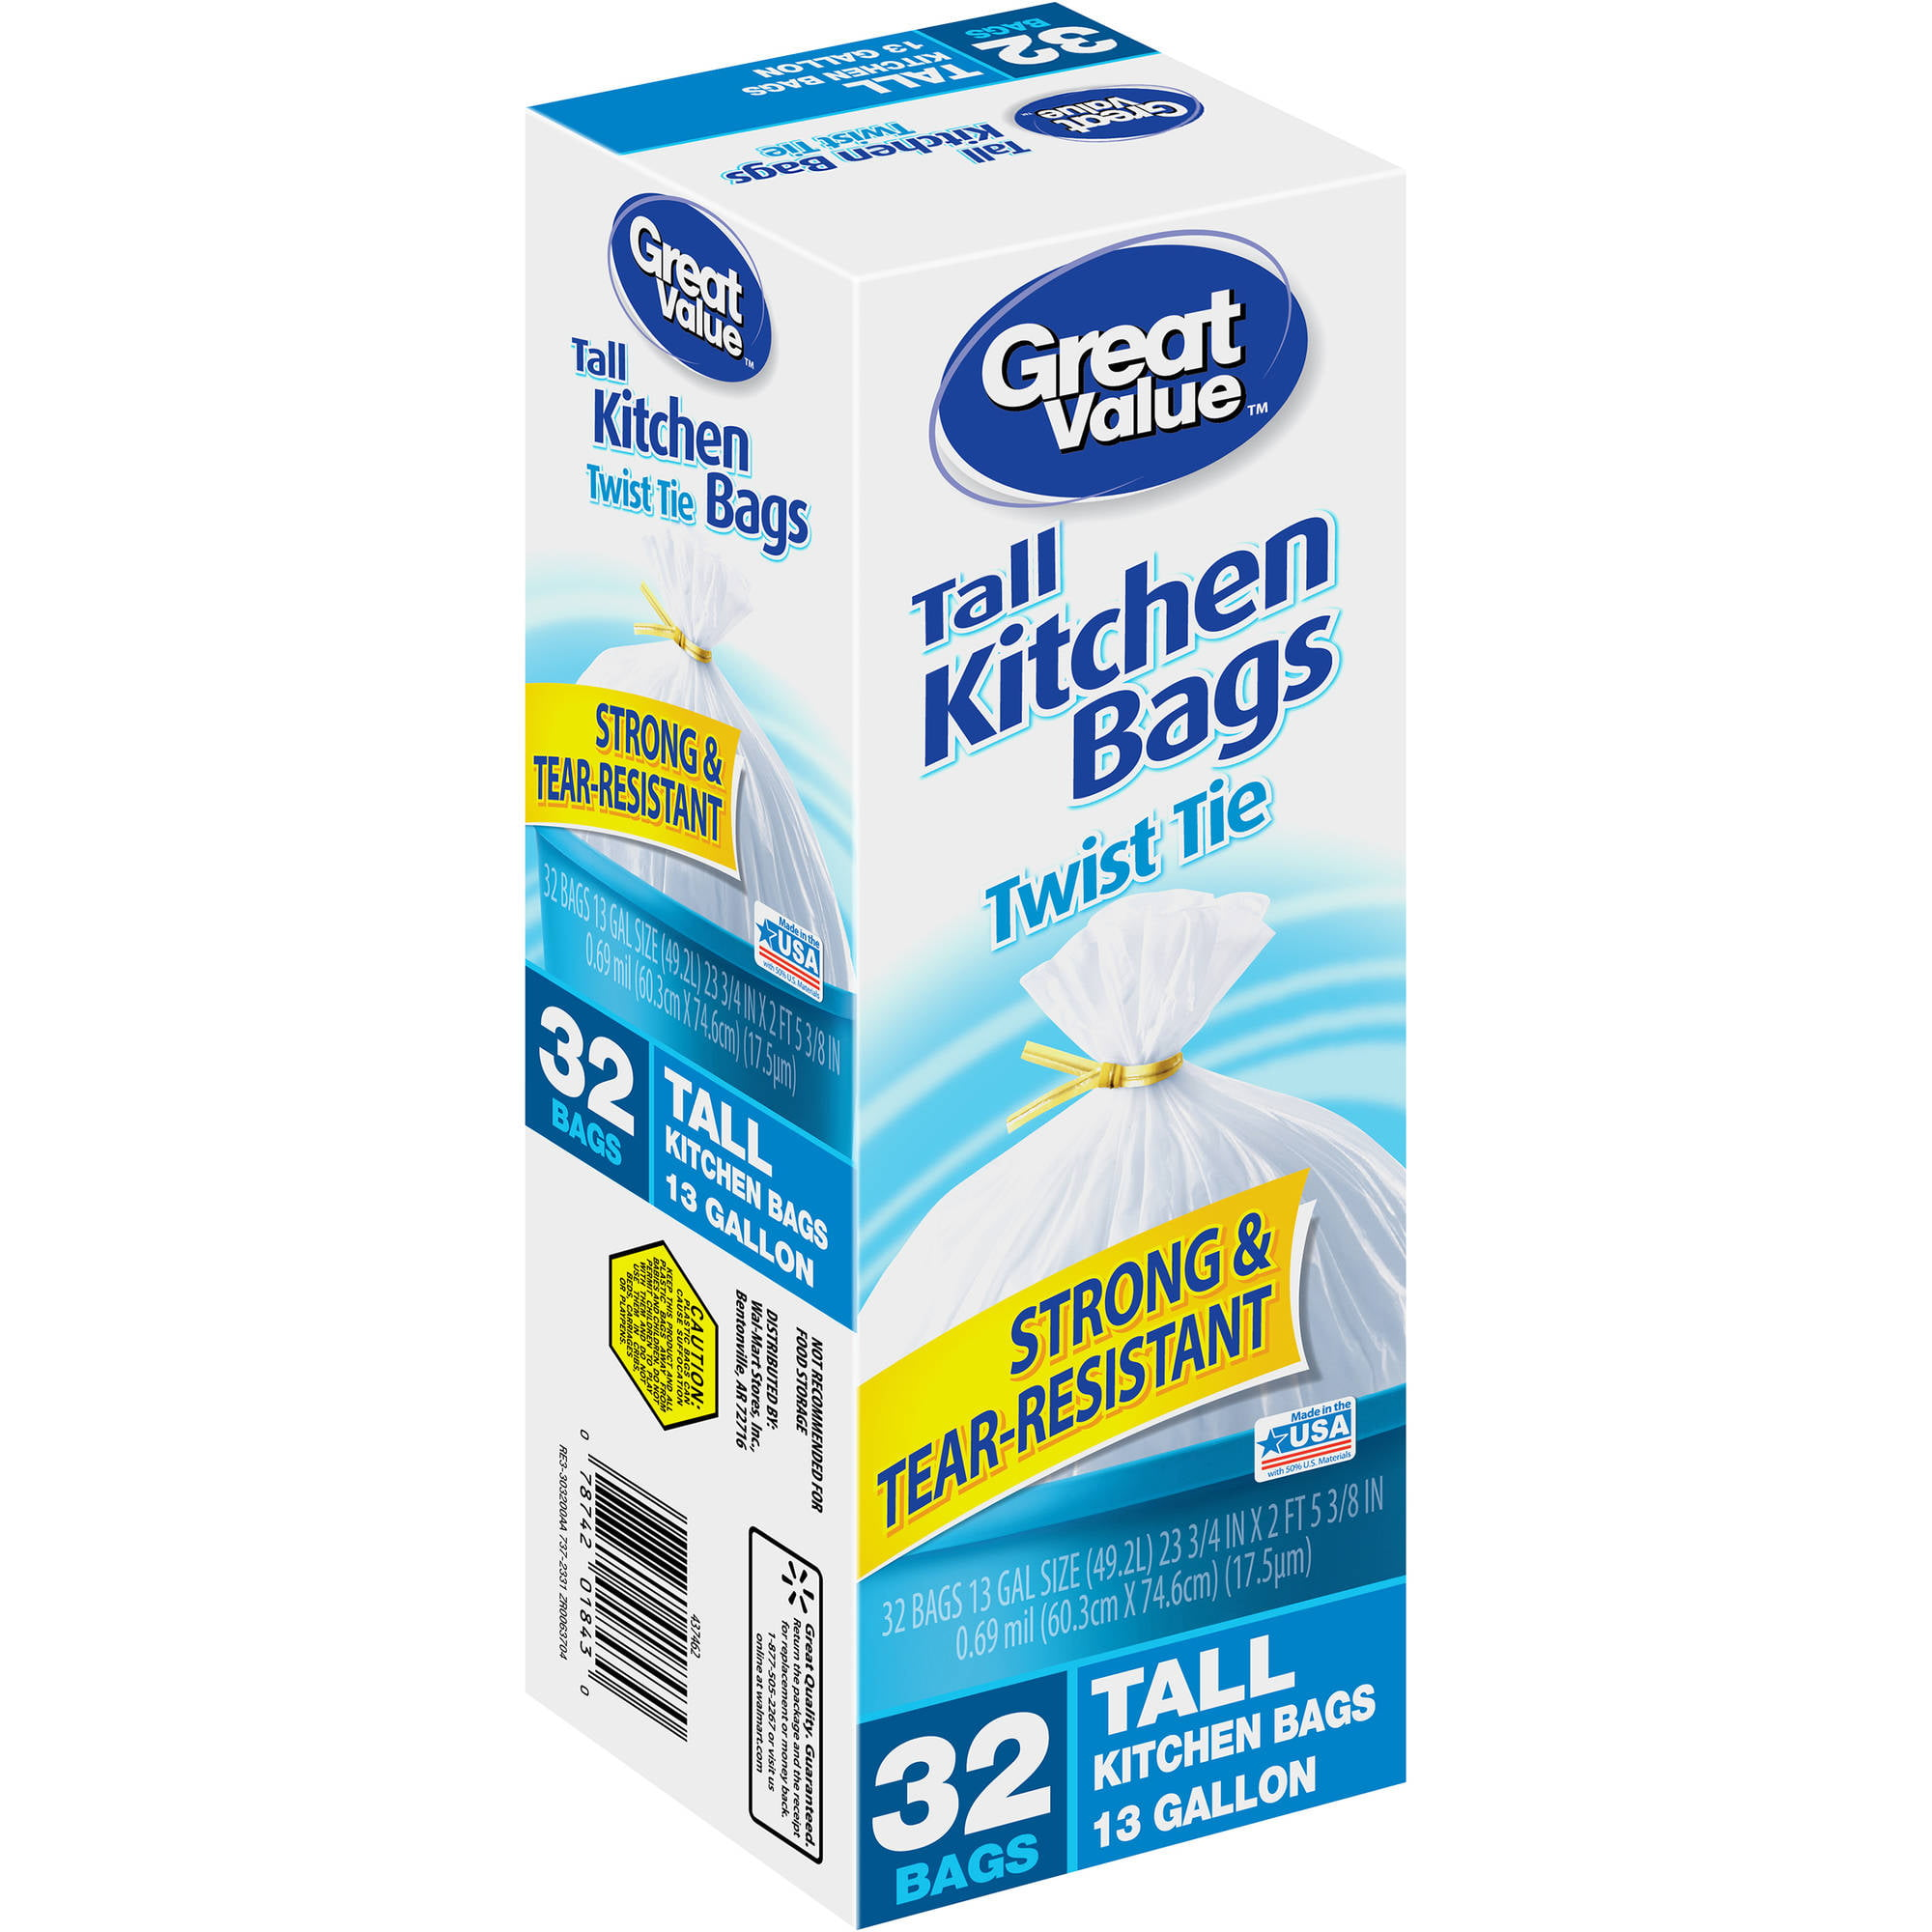 Ruffies Tall Kitchen Trash Bags, 13 Gallon, 82 Ct - Walmart.com